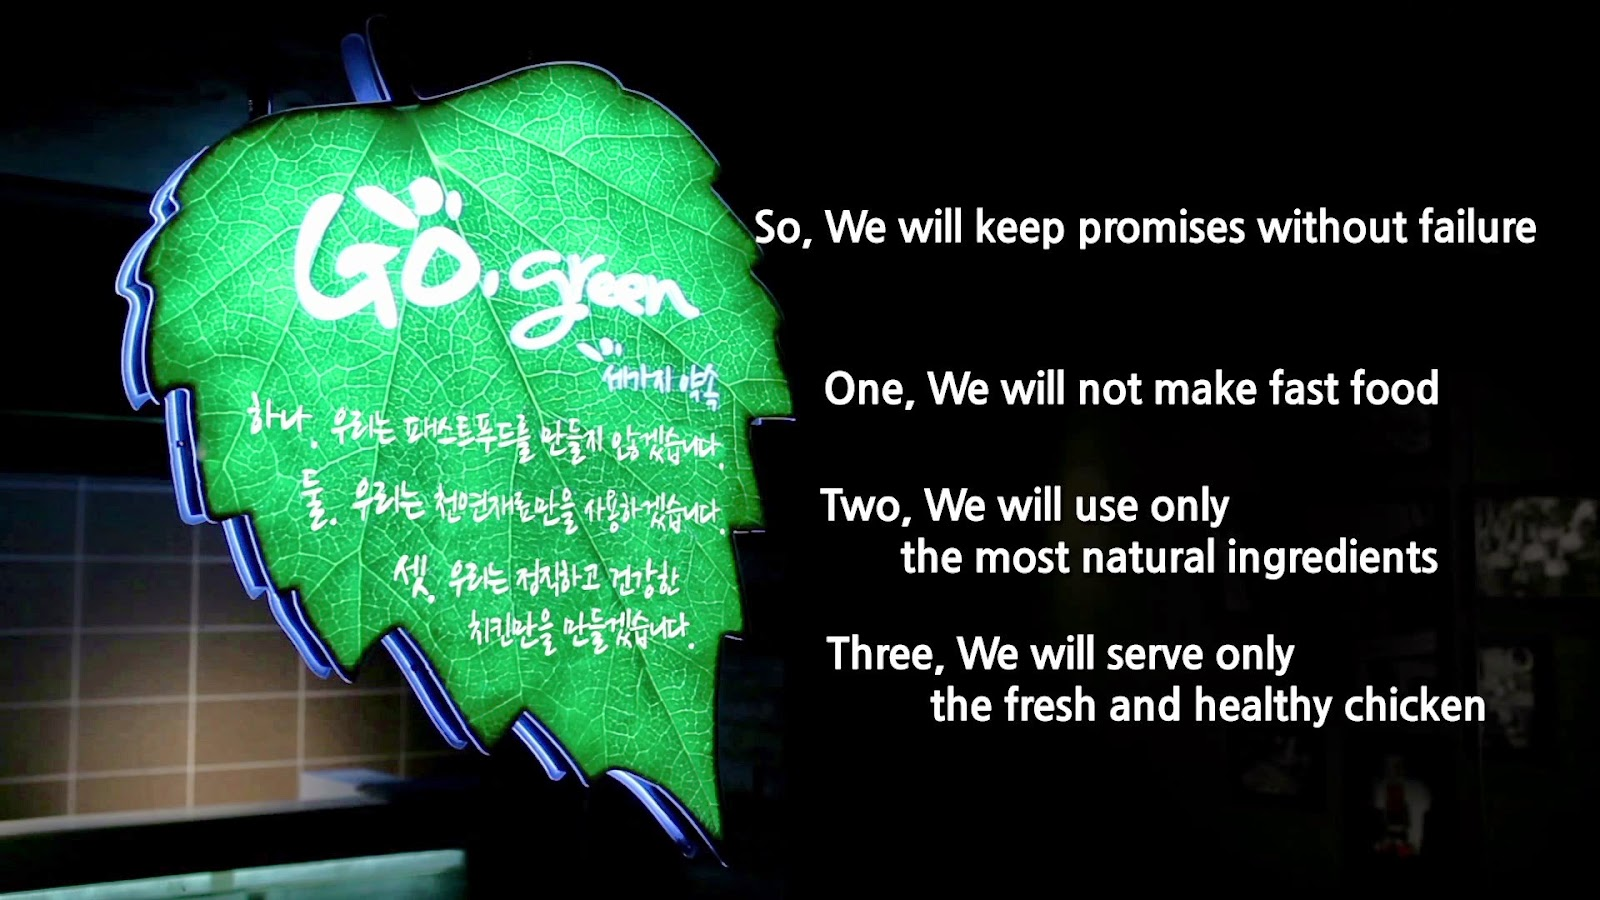 KyoChon's 3 Main Promises to Customers